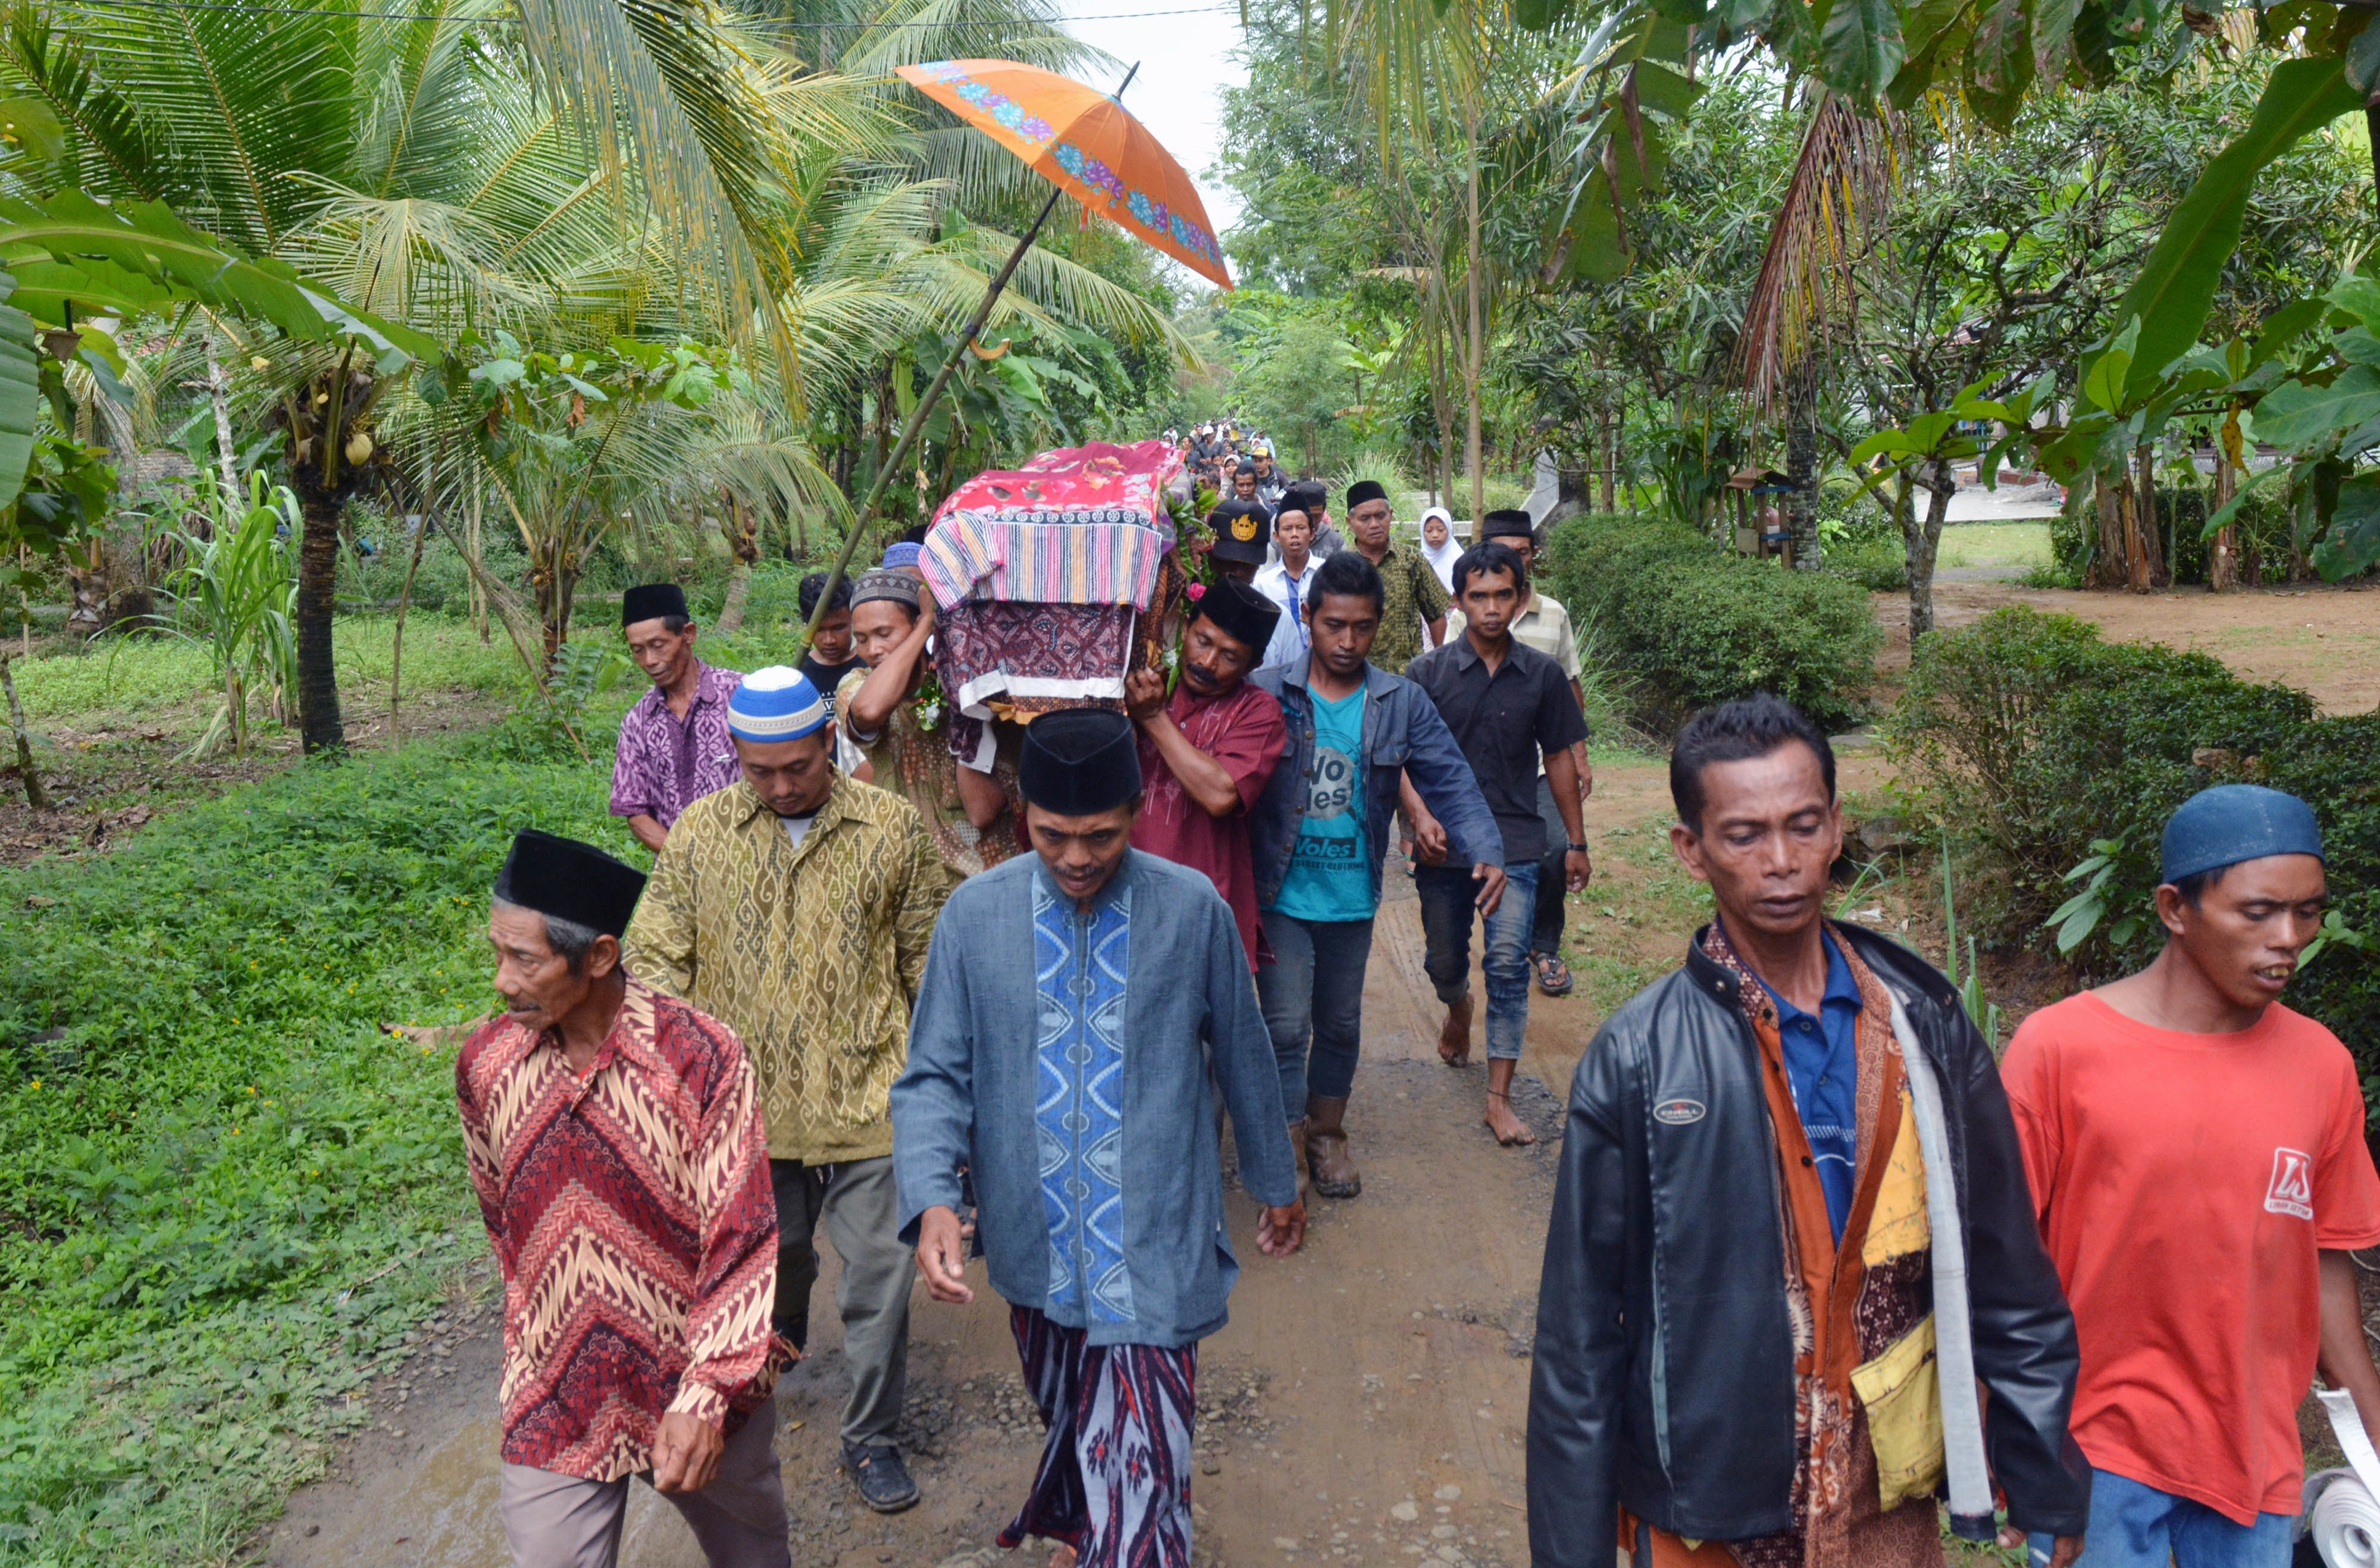 Relatives and villagers carry the coffin of Sumarti Ningsih, one of two Indonesian women murdered by British banker Rurik Jutting in Hong Kong, during her funeral at Gandrungmangu village, in Cilacap, Indonesia's Central Java province, on Nov. 12, 2014